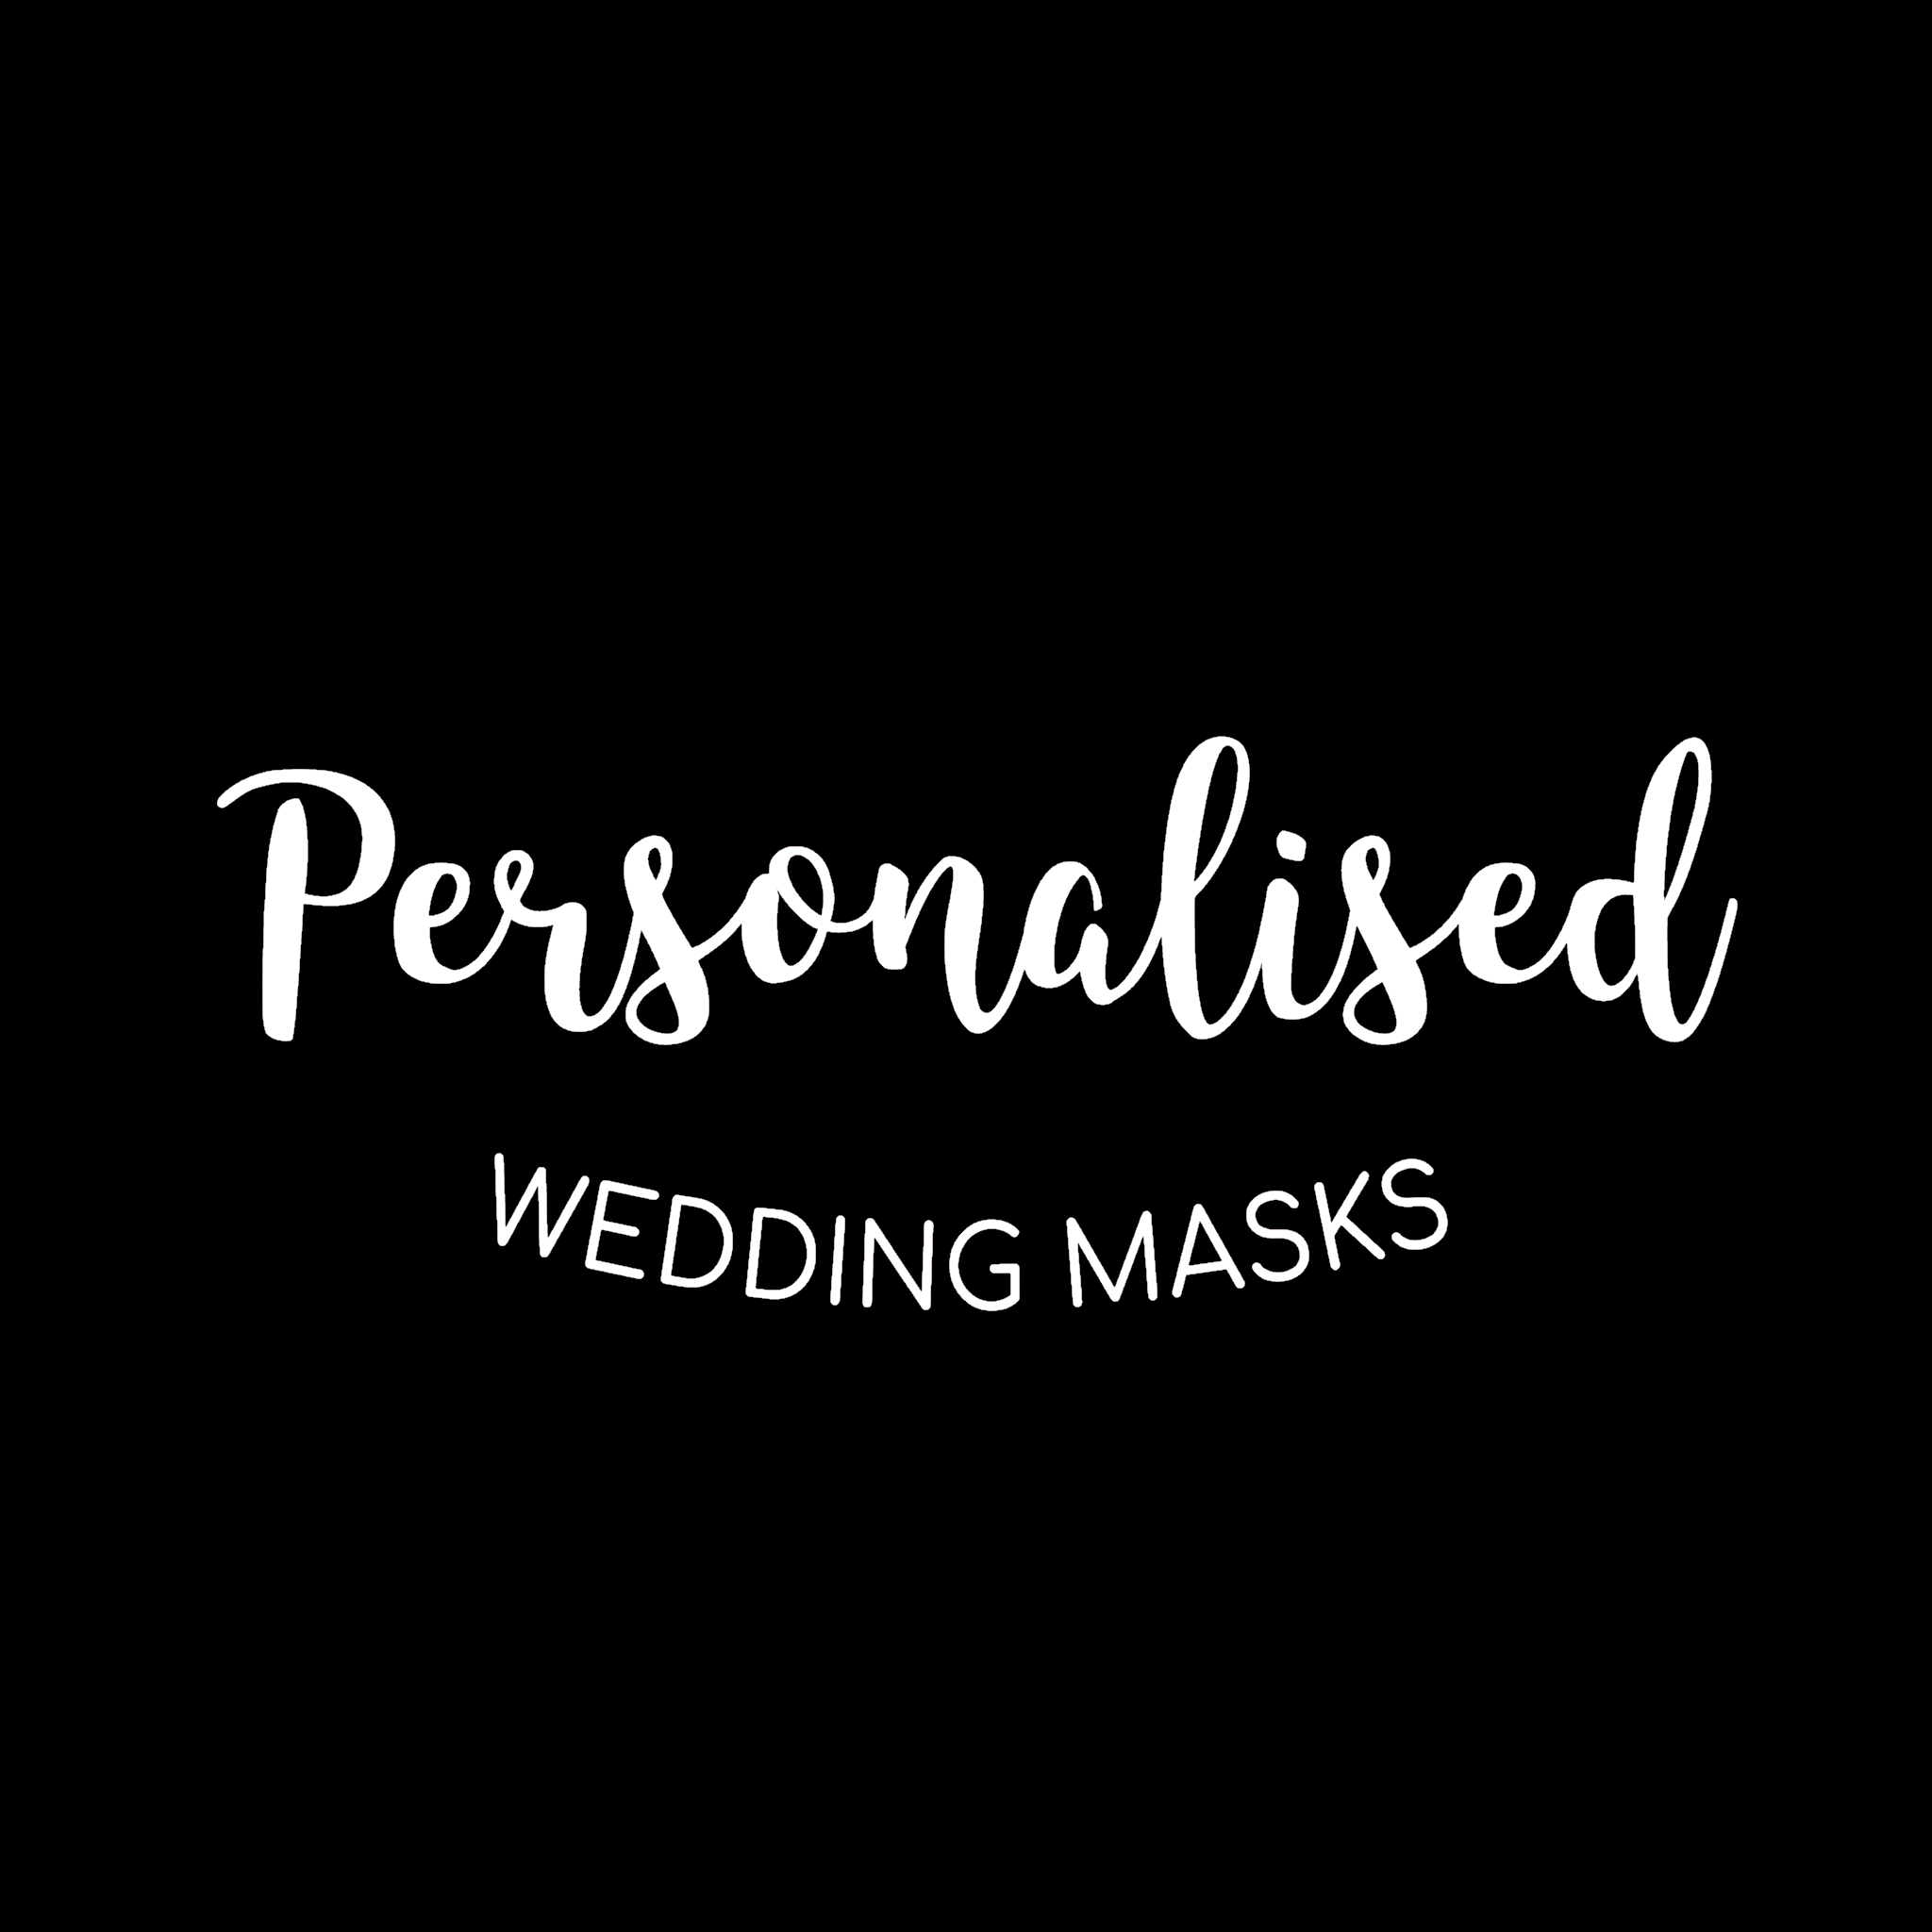 Personalisedweddingmasks.com create fun & unique customized face masks for weddings amidst a pandemic